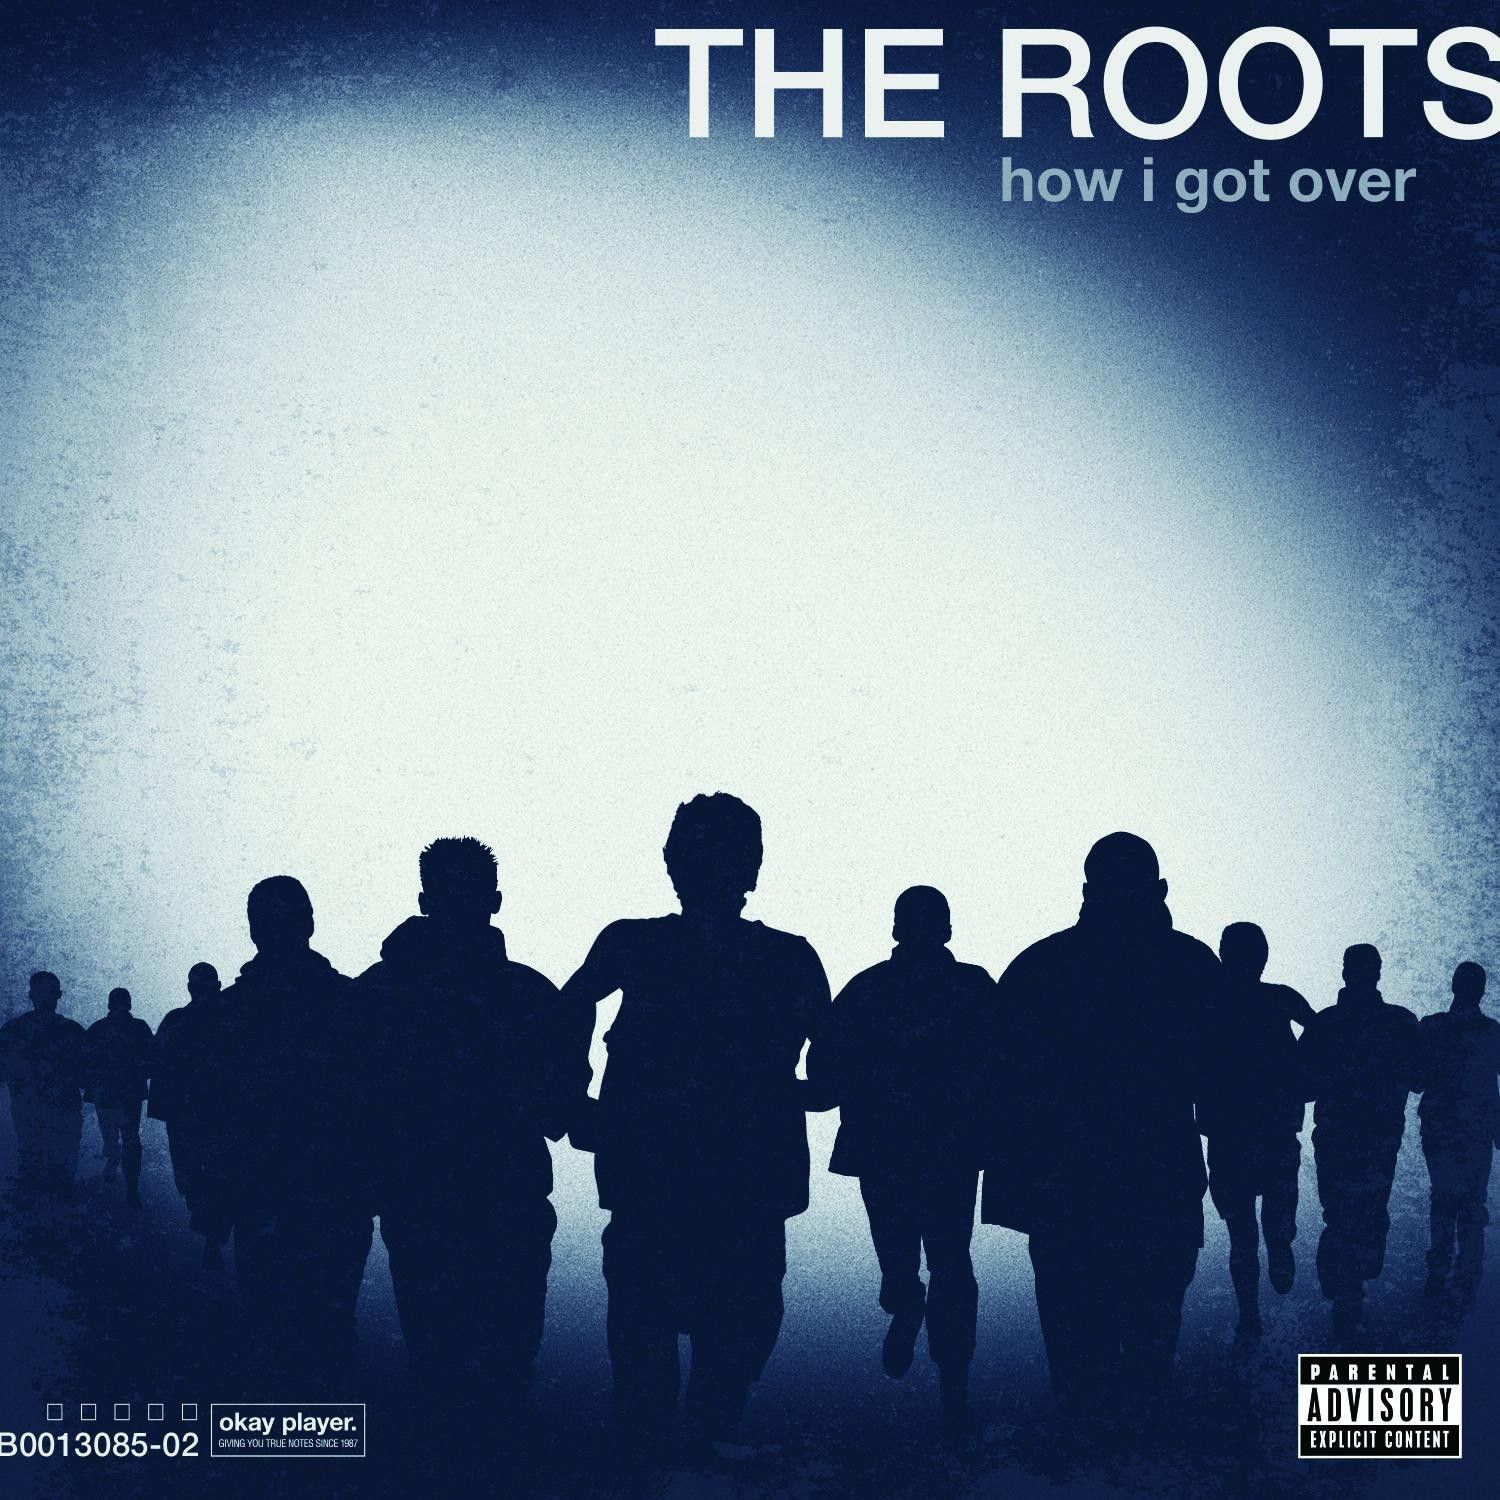 The Roots - How I Got Over album cover